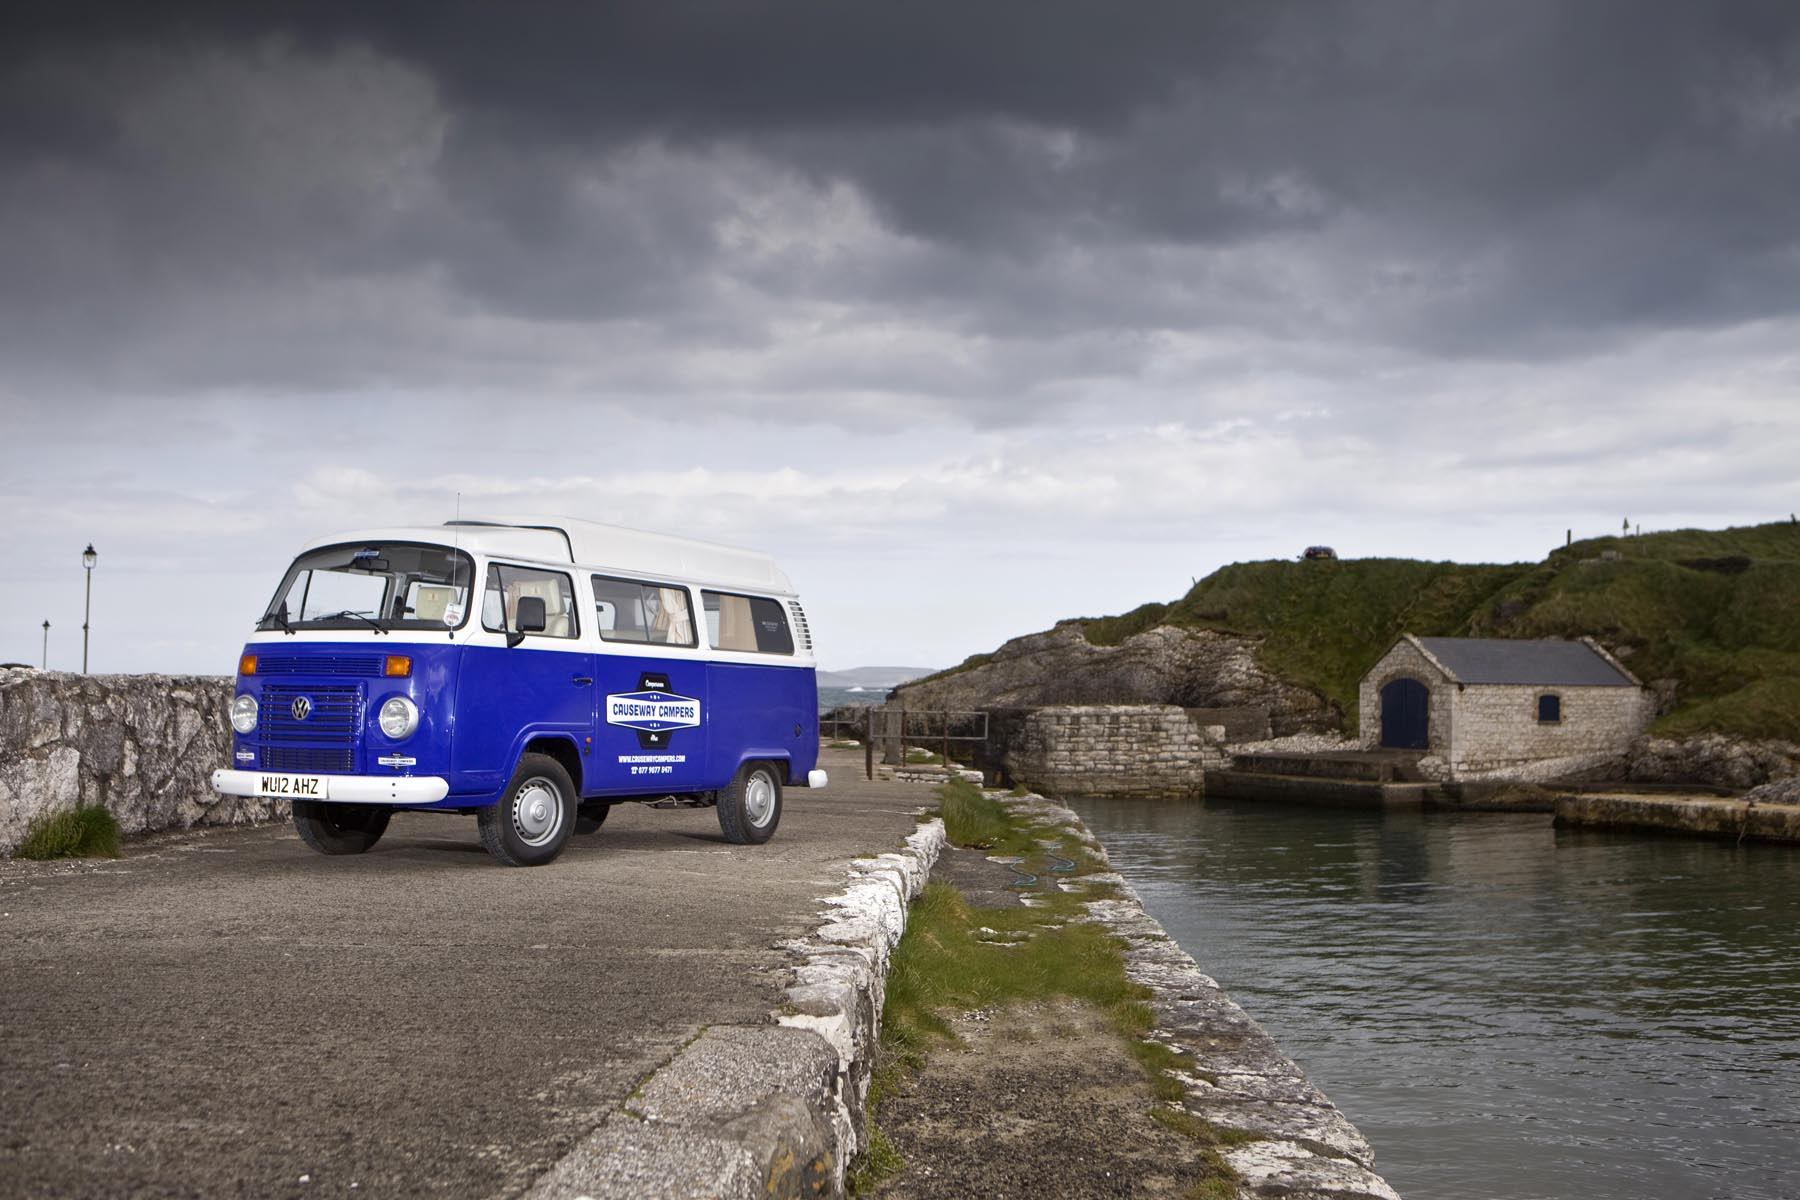 WE DISCOVER NORTHERN IRELAND AND TICK THE VW CAMPER VAN OFF THE